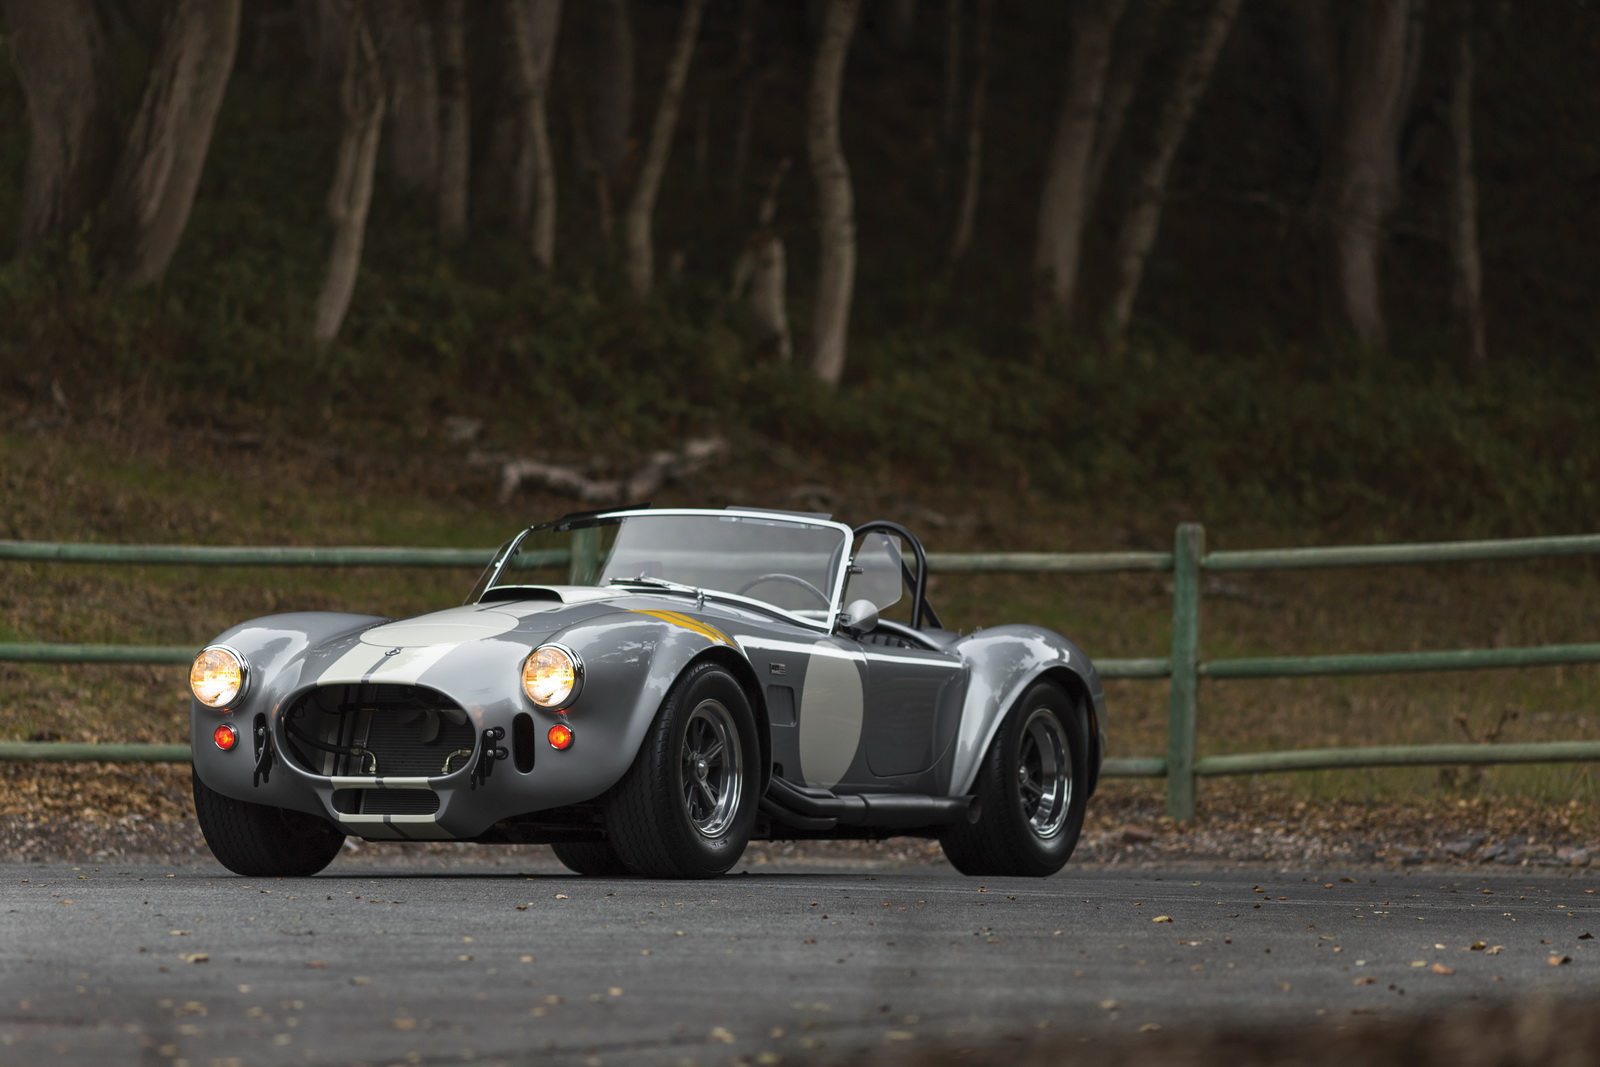 This original shelby cobra 427 should fetch millions at auction